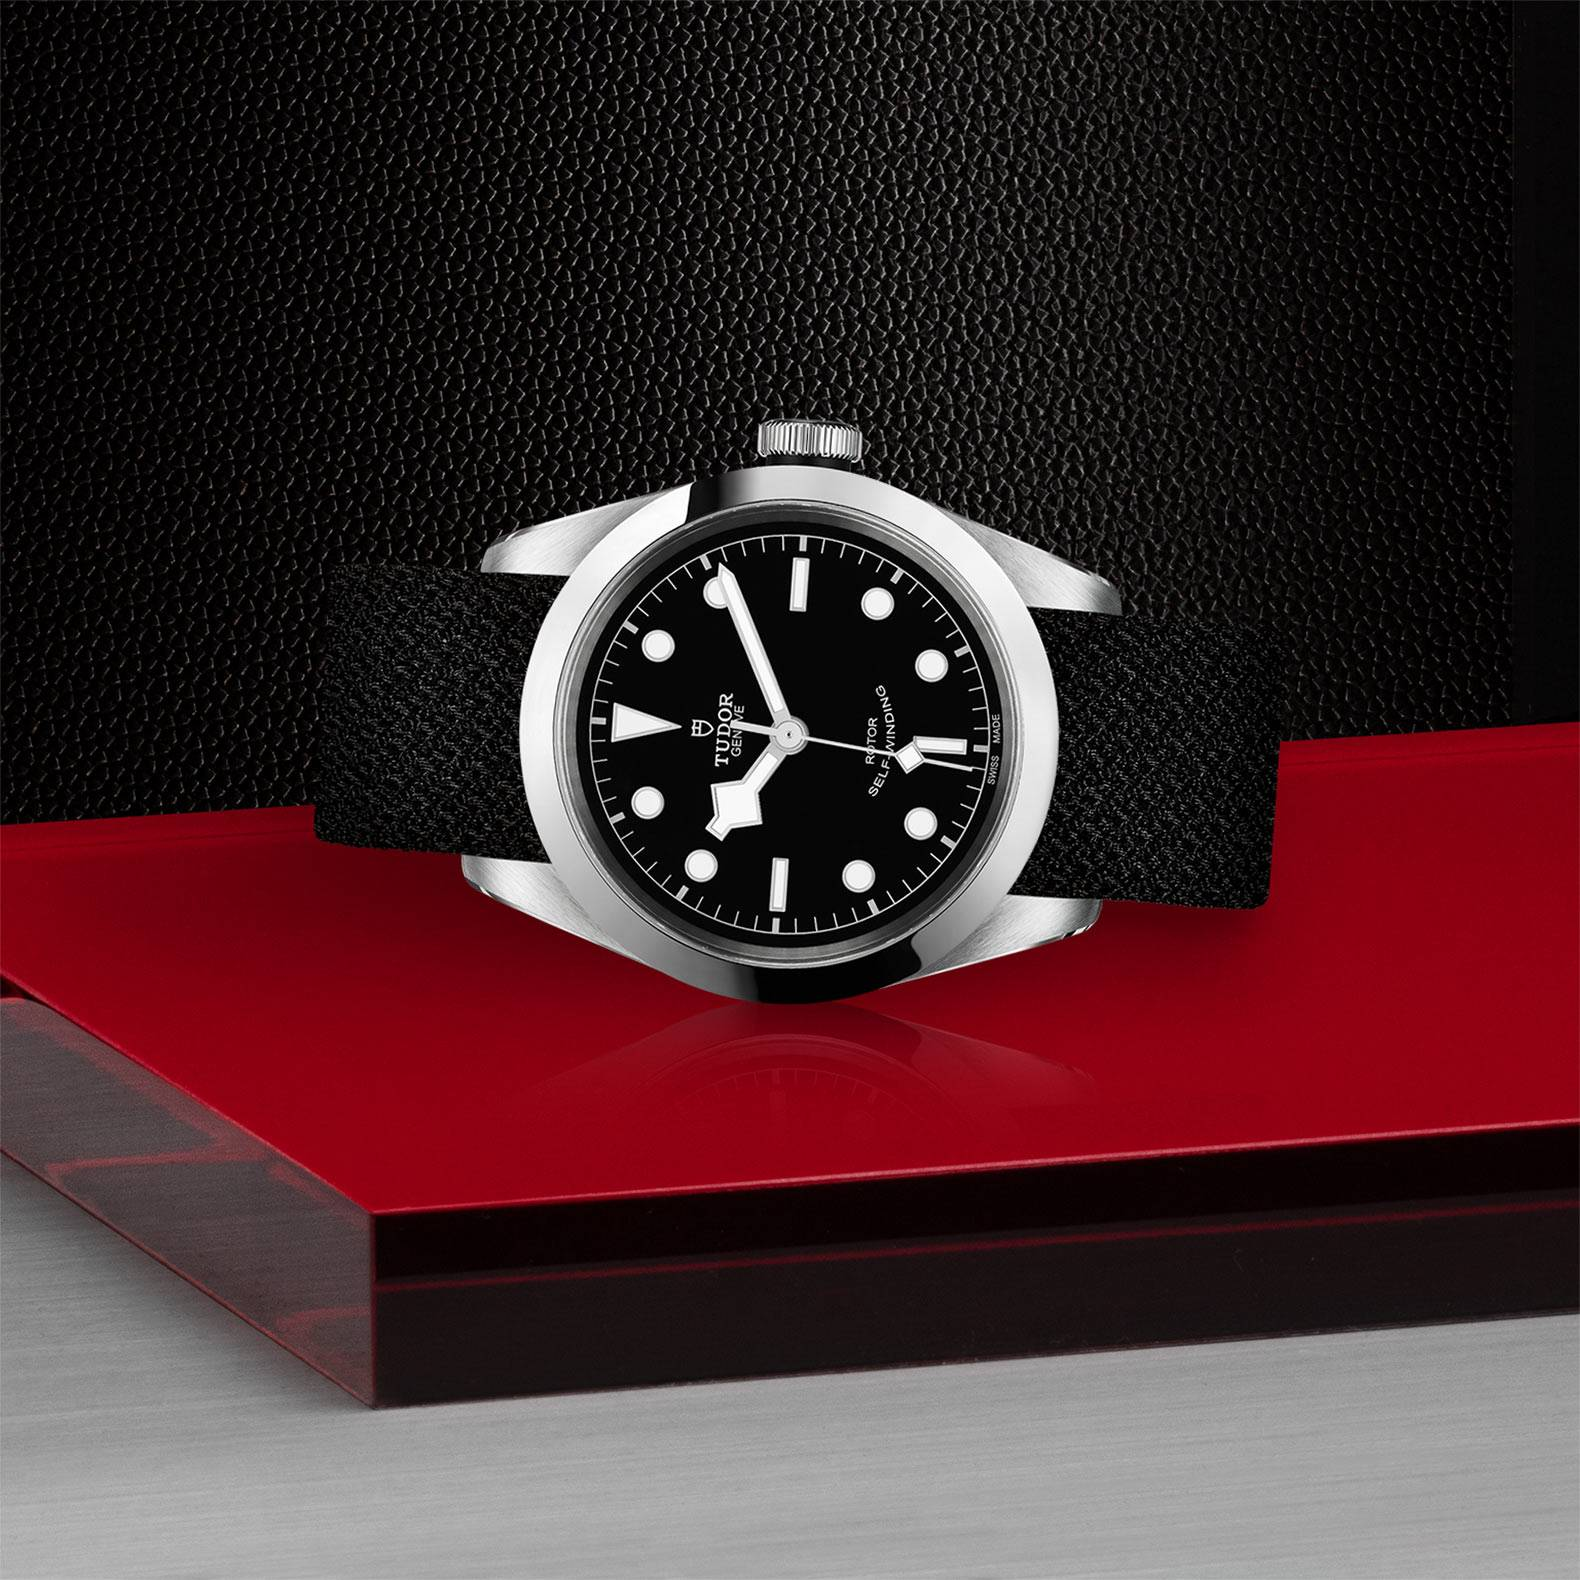 Tudor Black Bay 32 / 36 / 41 M79540-0009